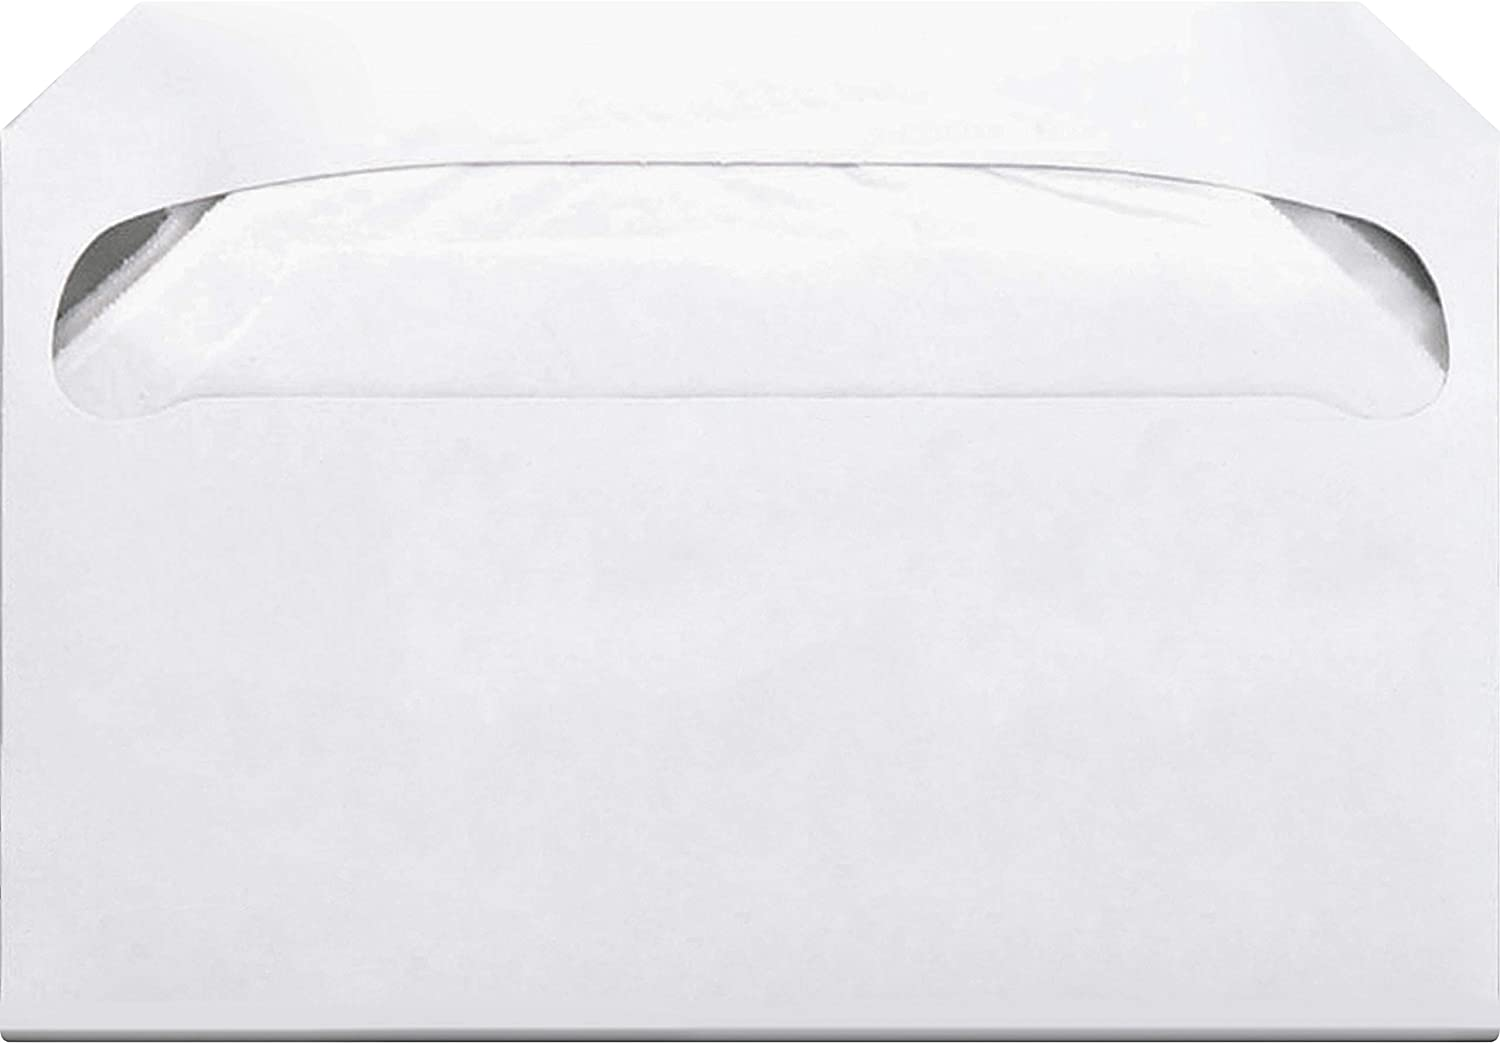 ABC Pack of 250 Half Fold Toilet Seat Covers One-ply Quick-dissolving Tissue Sheets. 1//2 Fold Disposable Potty Seat Cover Sheets Biodegradable Travel White Paper Seat Covers for Public Washrooms